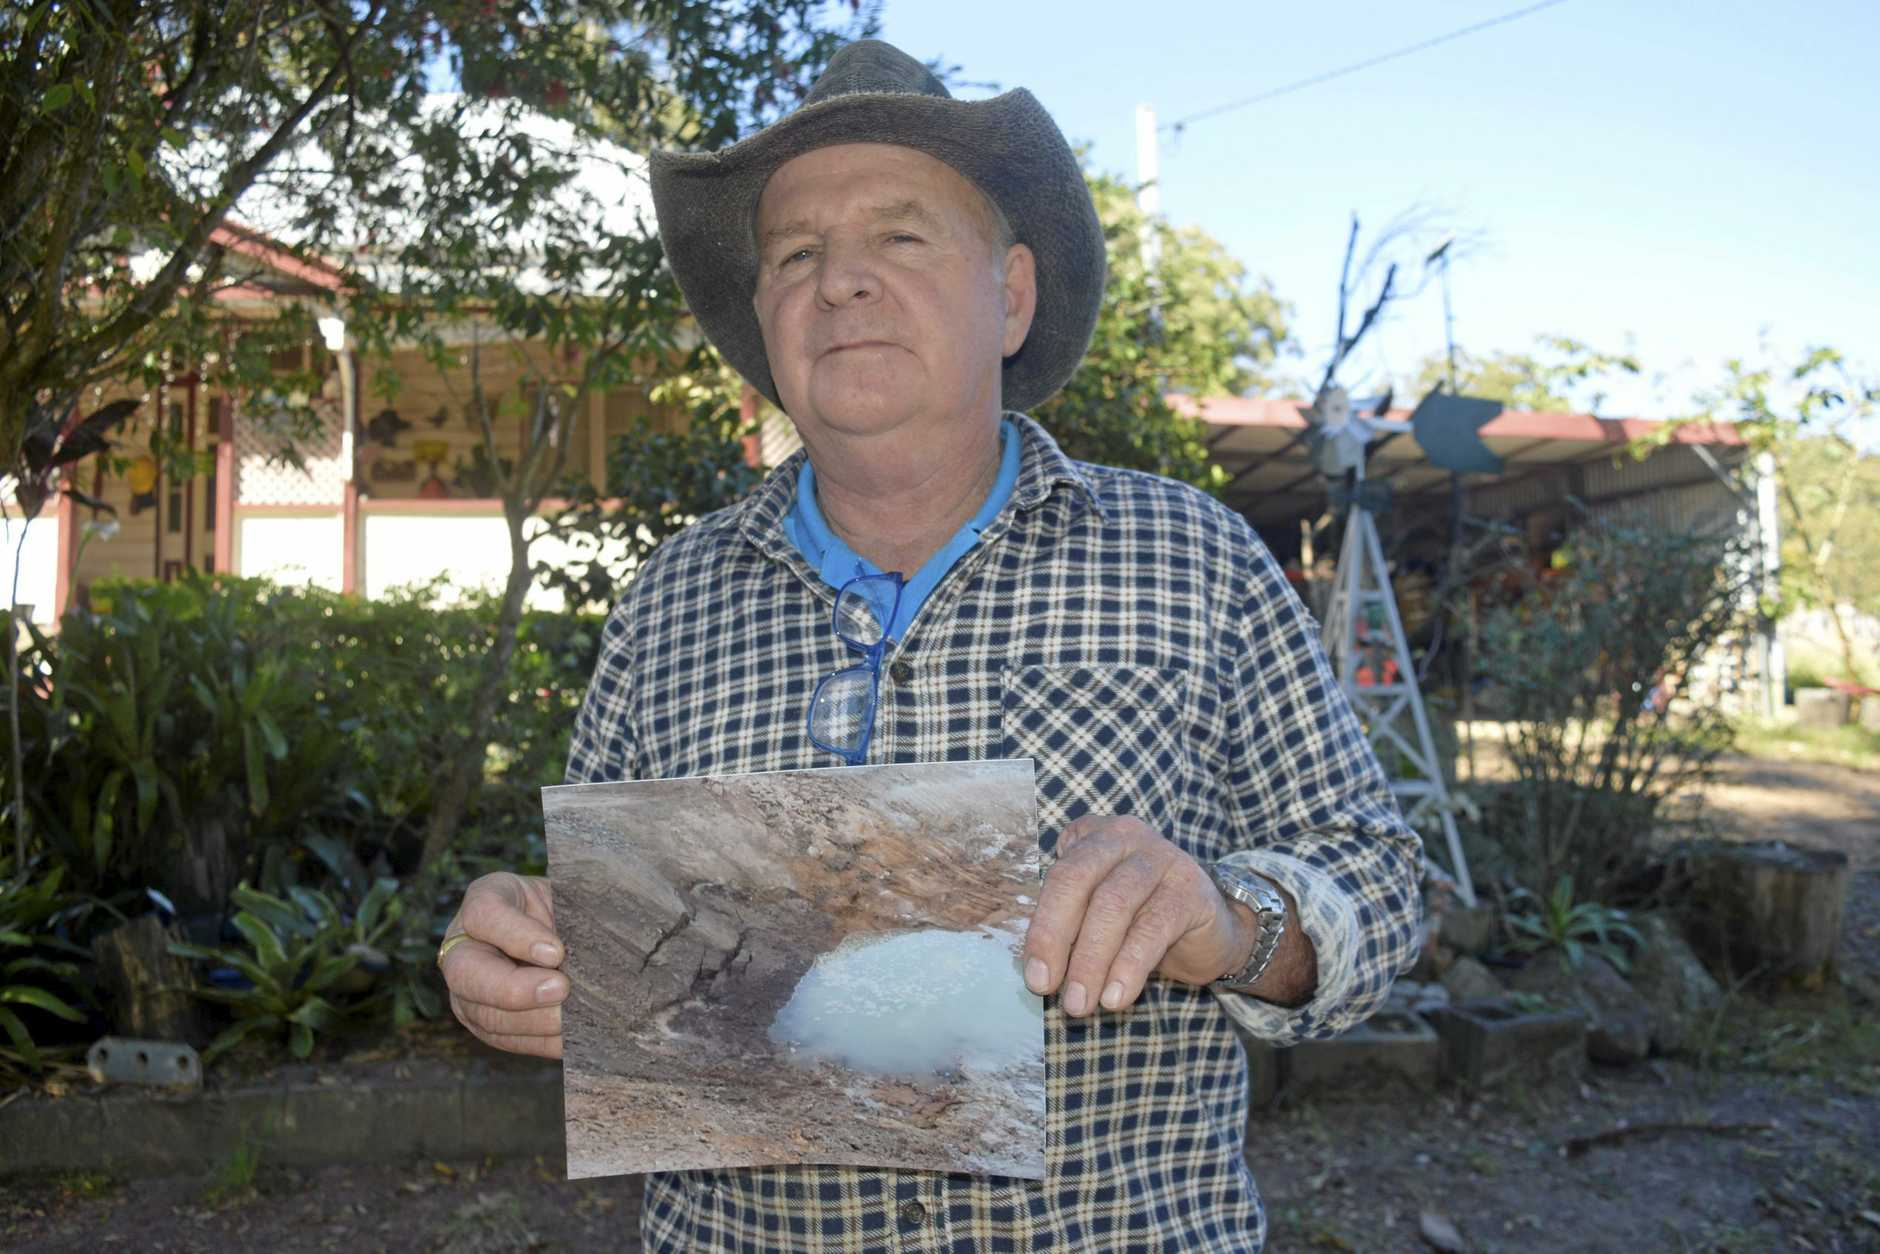 Phil Marcus with a photograph of the groundwater seeping through in one of the sediment dam.